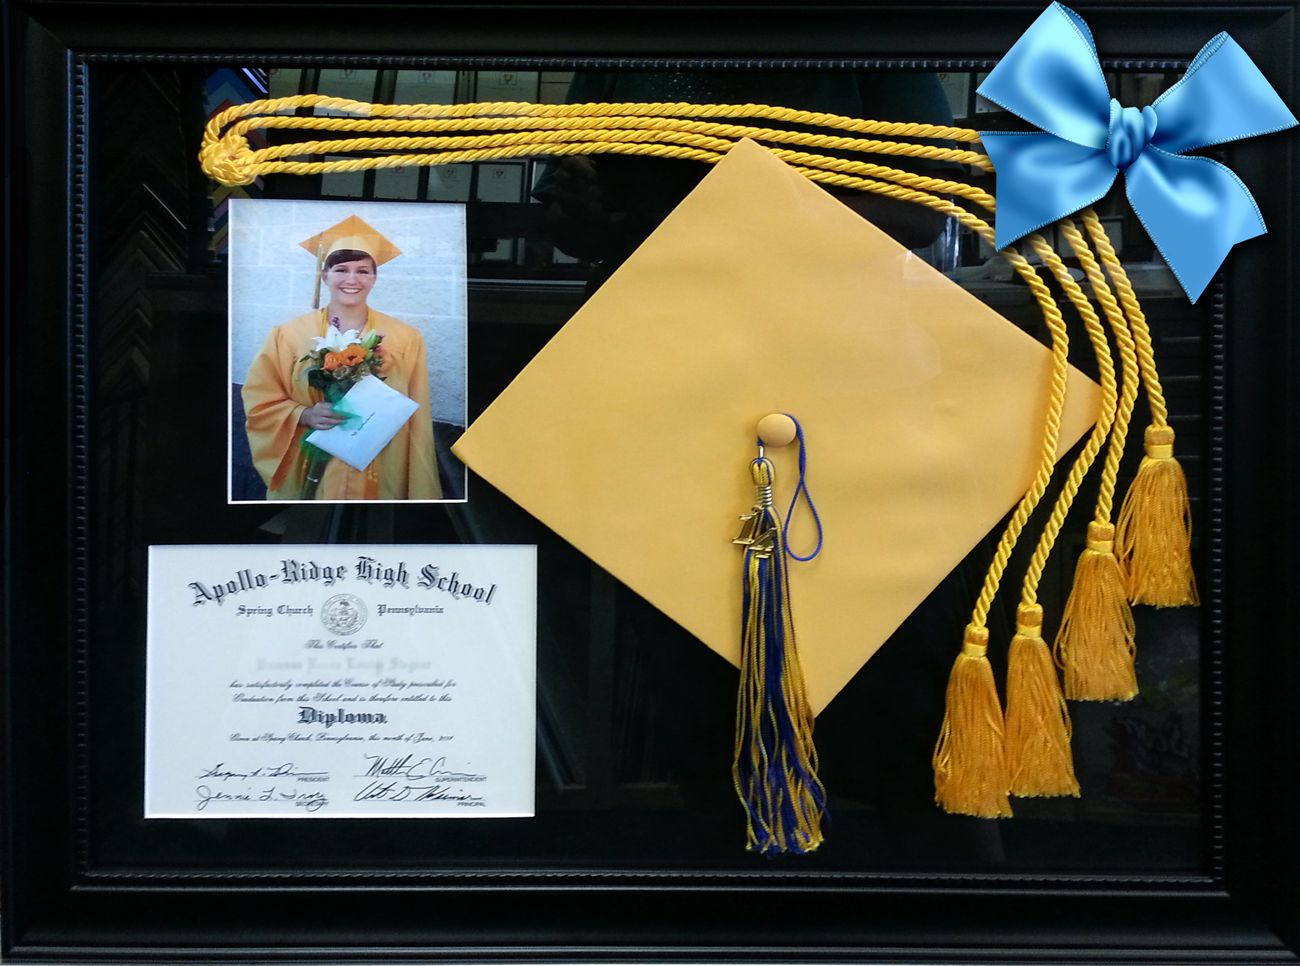 need a high school diploma framed let us help you preserve your valuable memories in